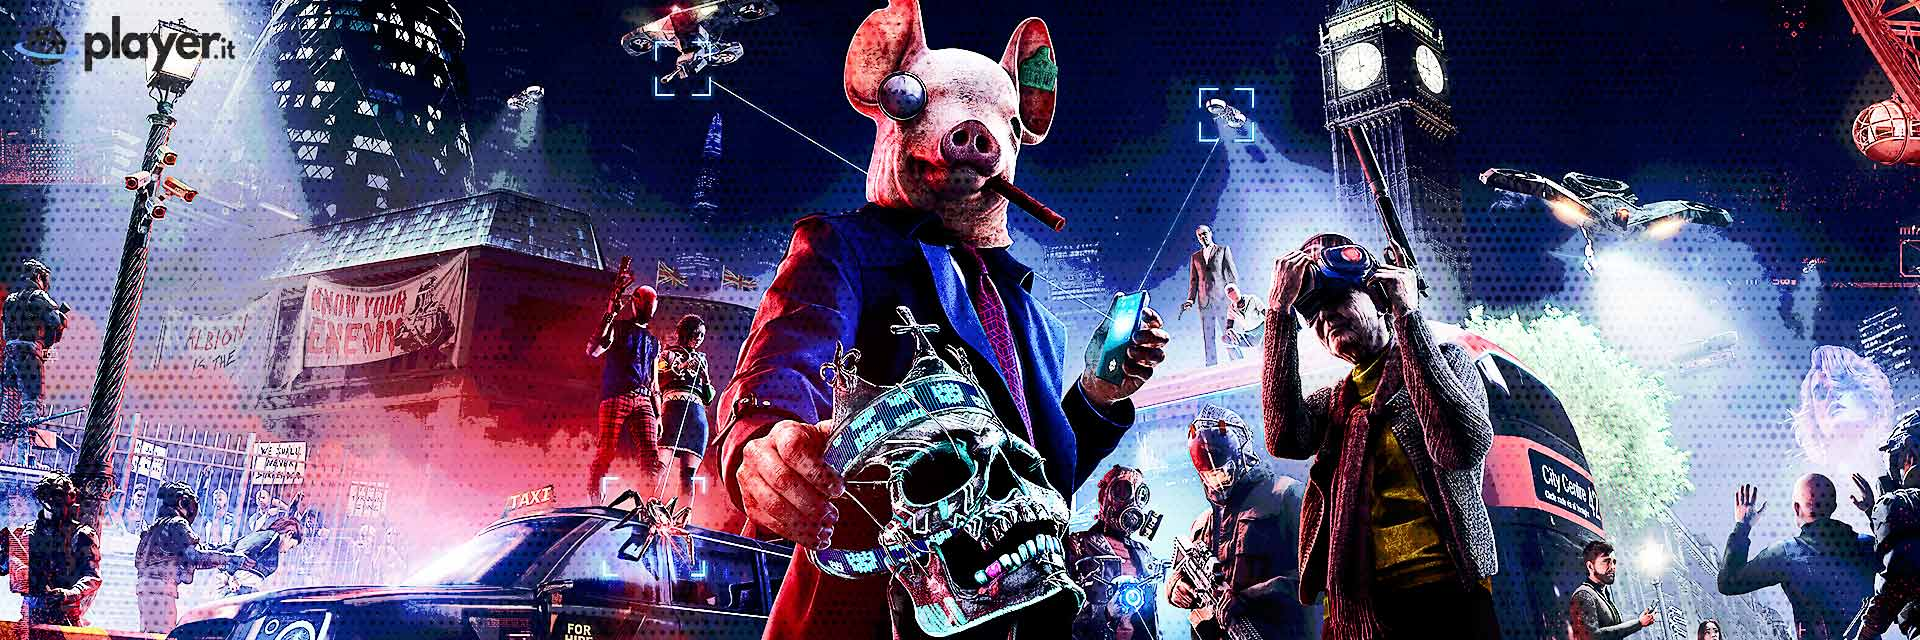 watch dogs legion wallpaper in hd